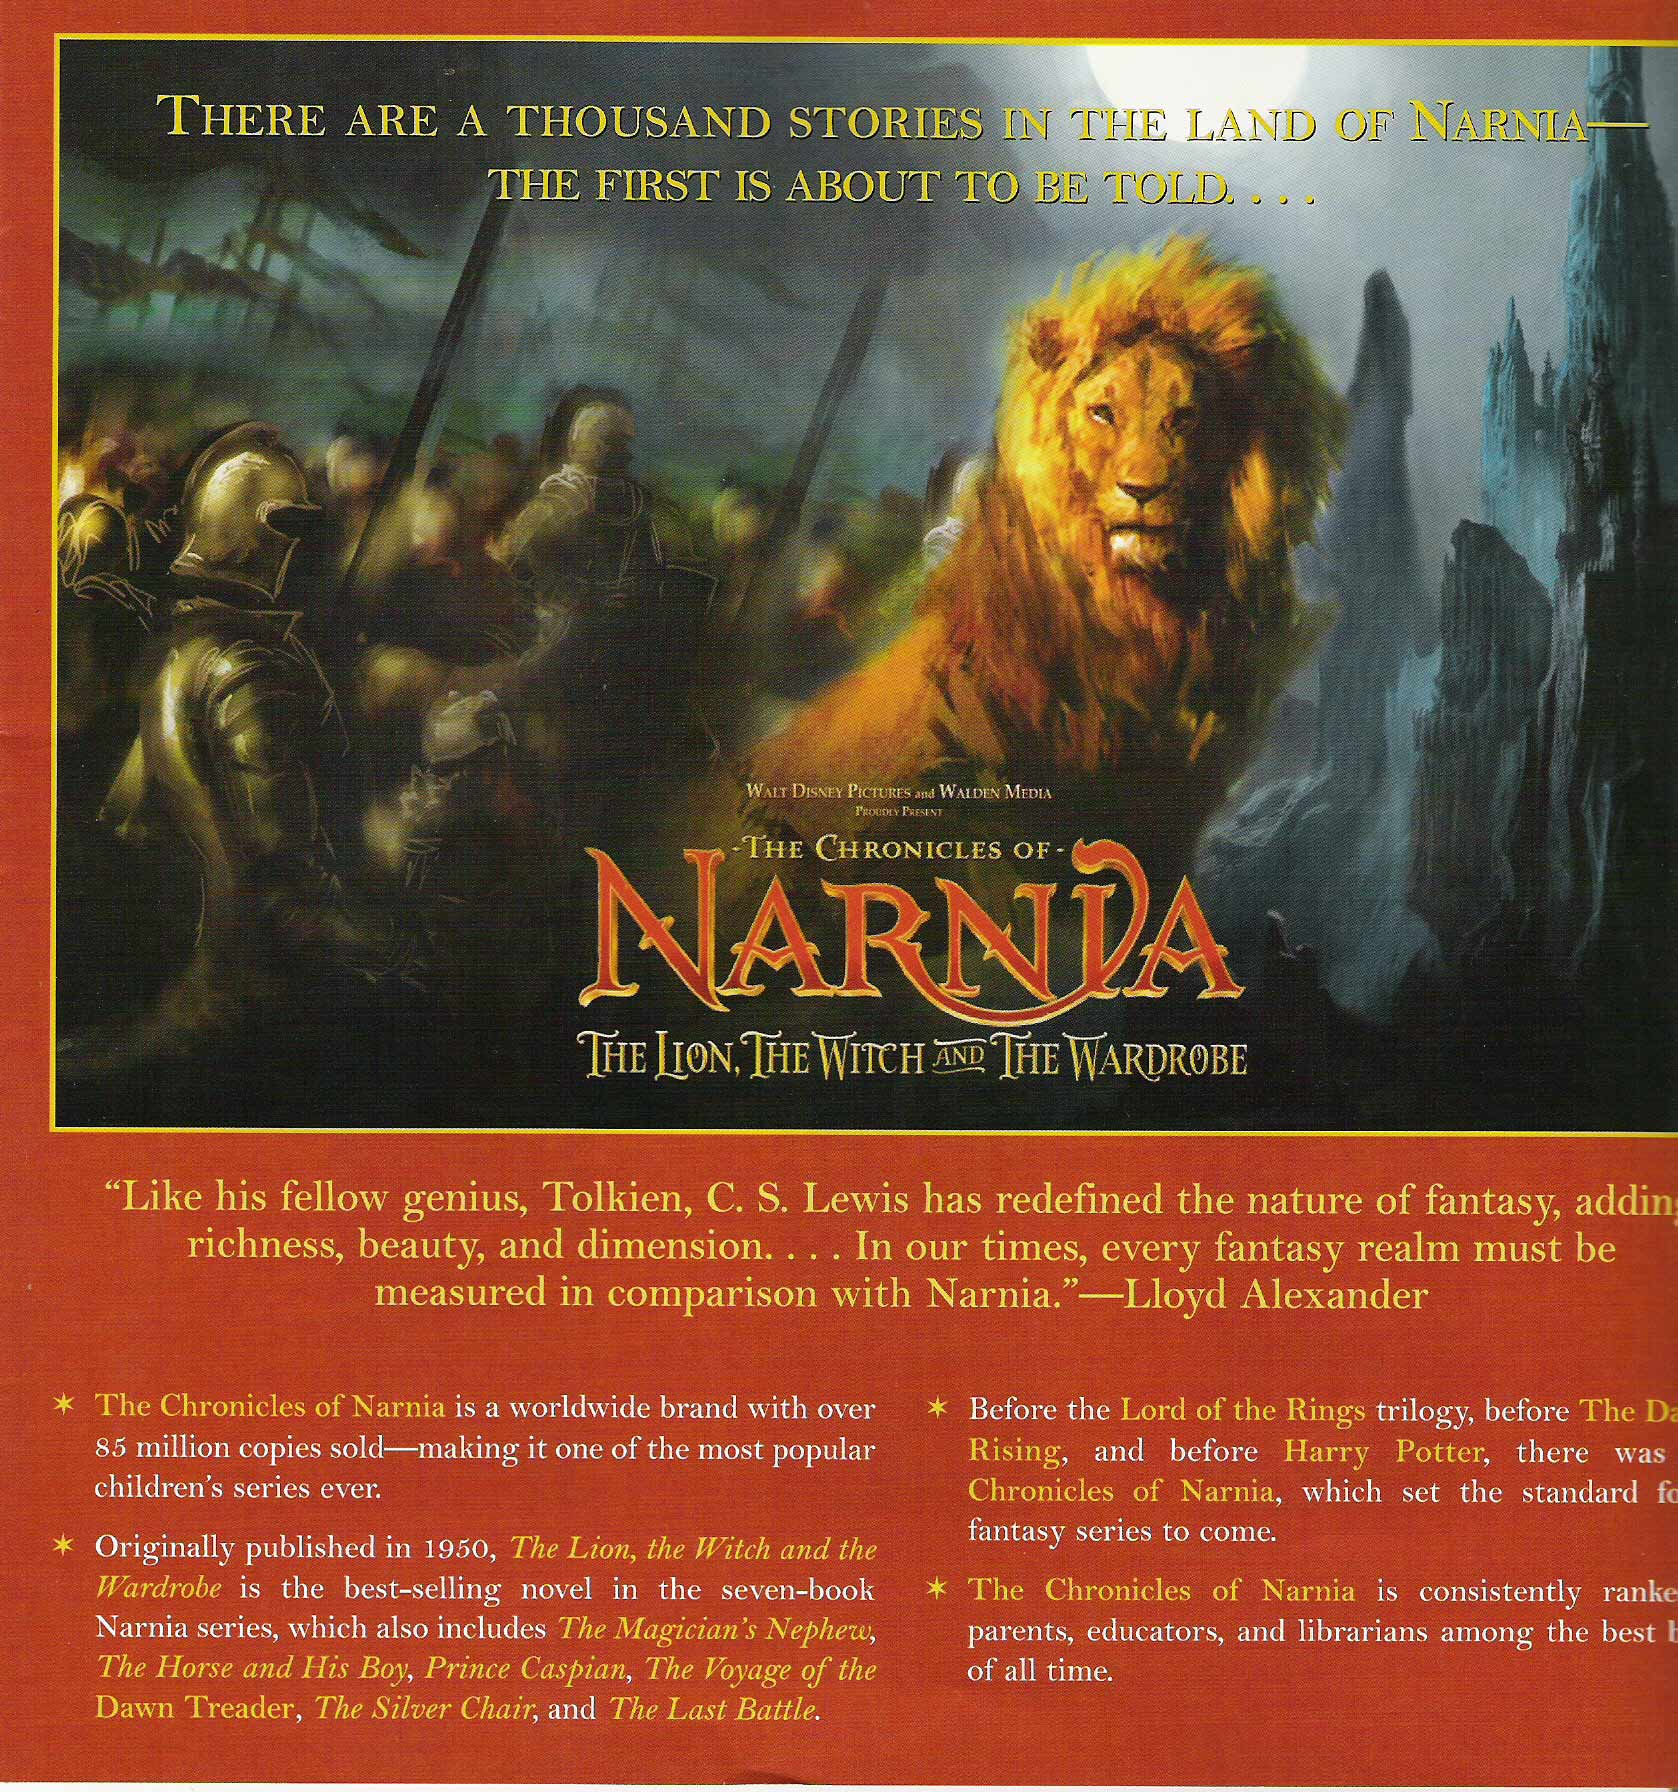 narnia book movie 10 big differences between narnia: voyage of the dawn treader book and  movie by jessica grabert 0 comments 8 years ago.